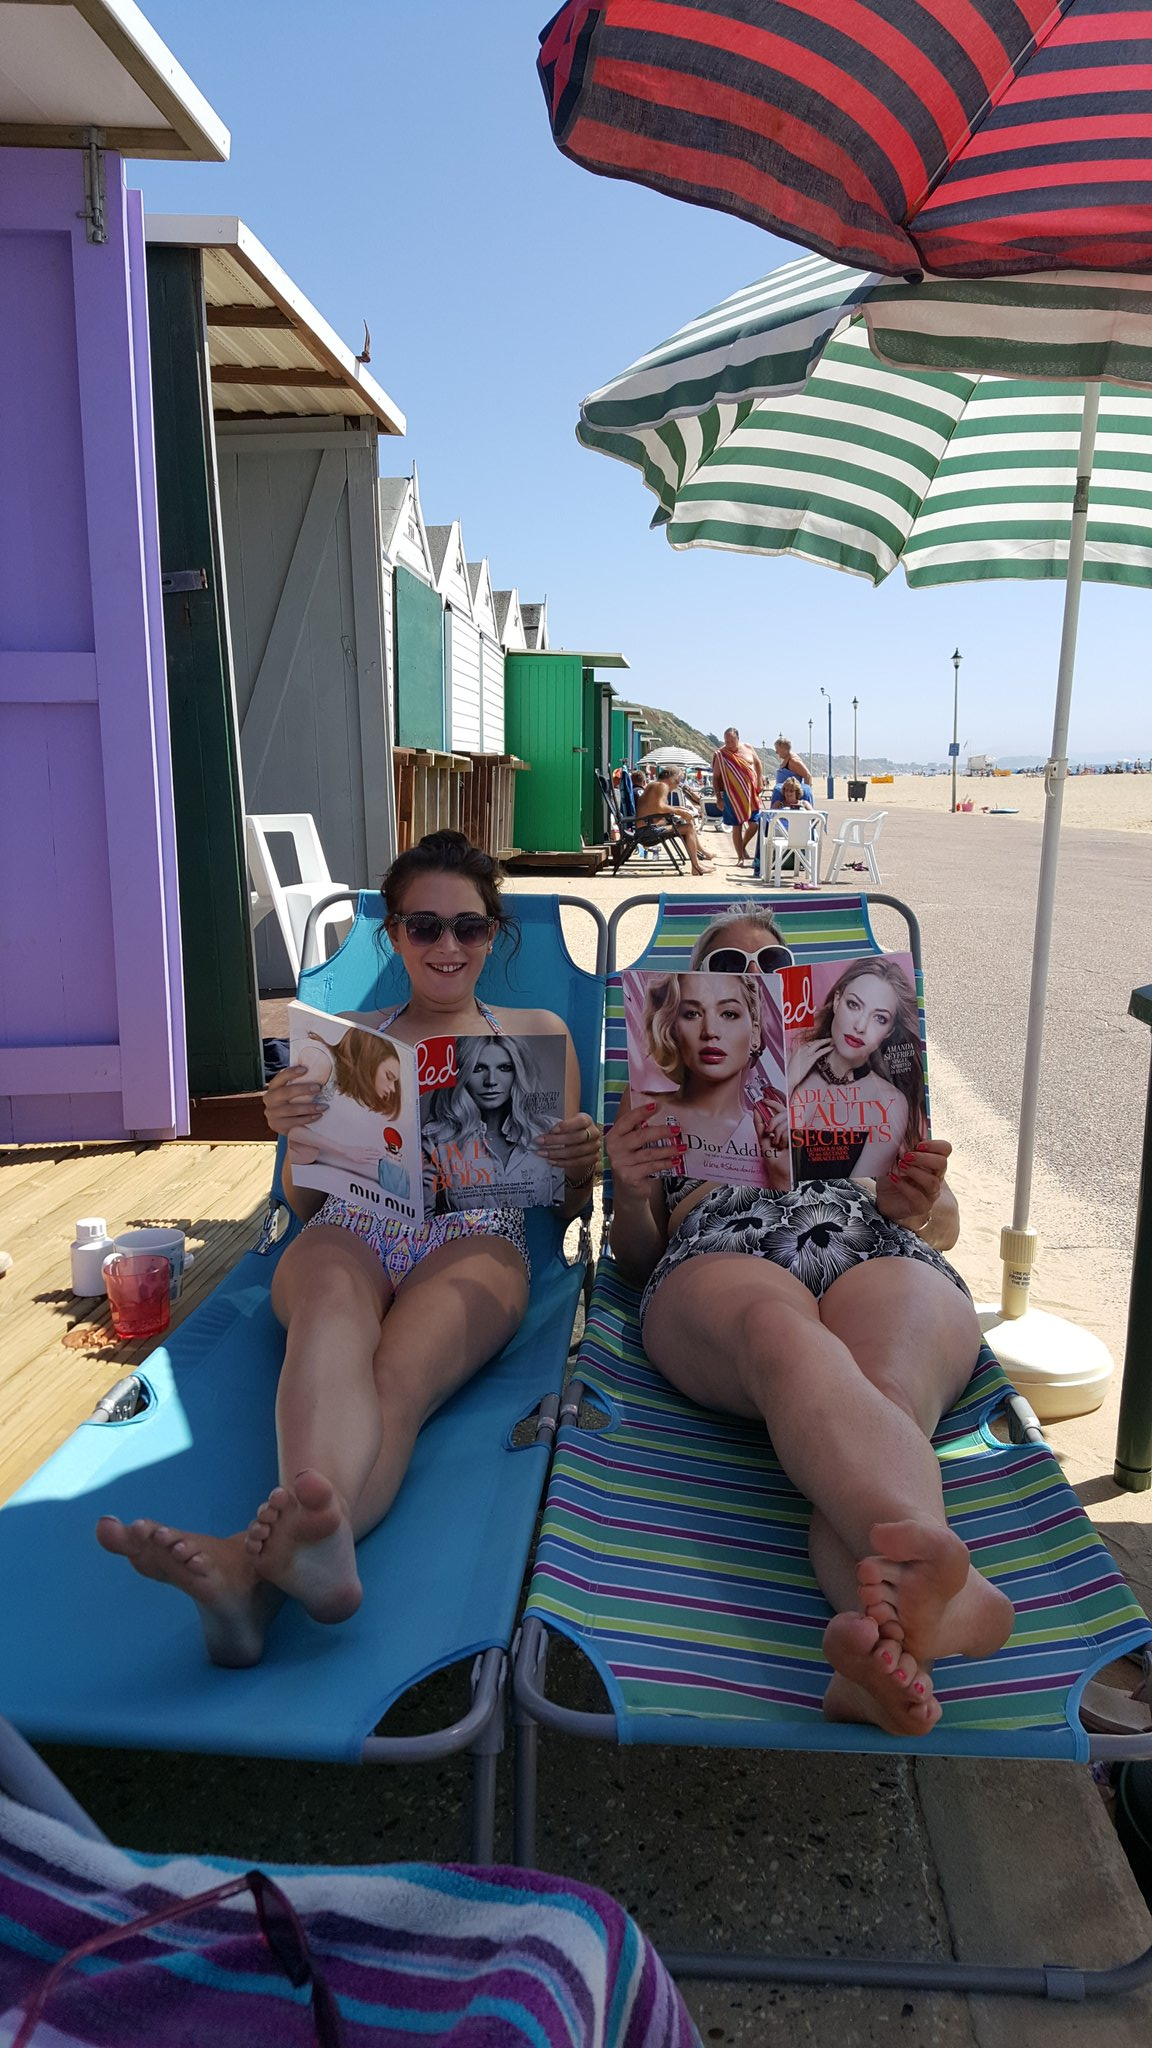 RT @vicjewellery: @RedMagDaily perfect read on bournemouth beach today x https://t.co/op3hjn4smg